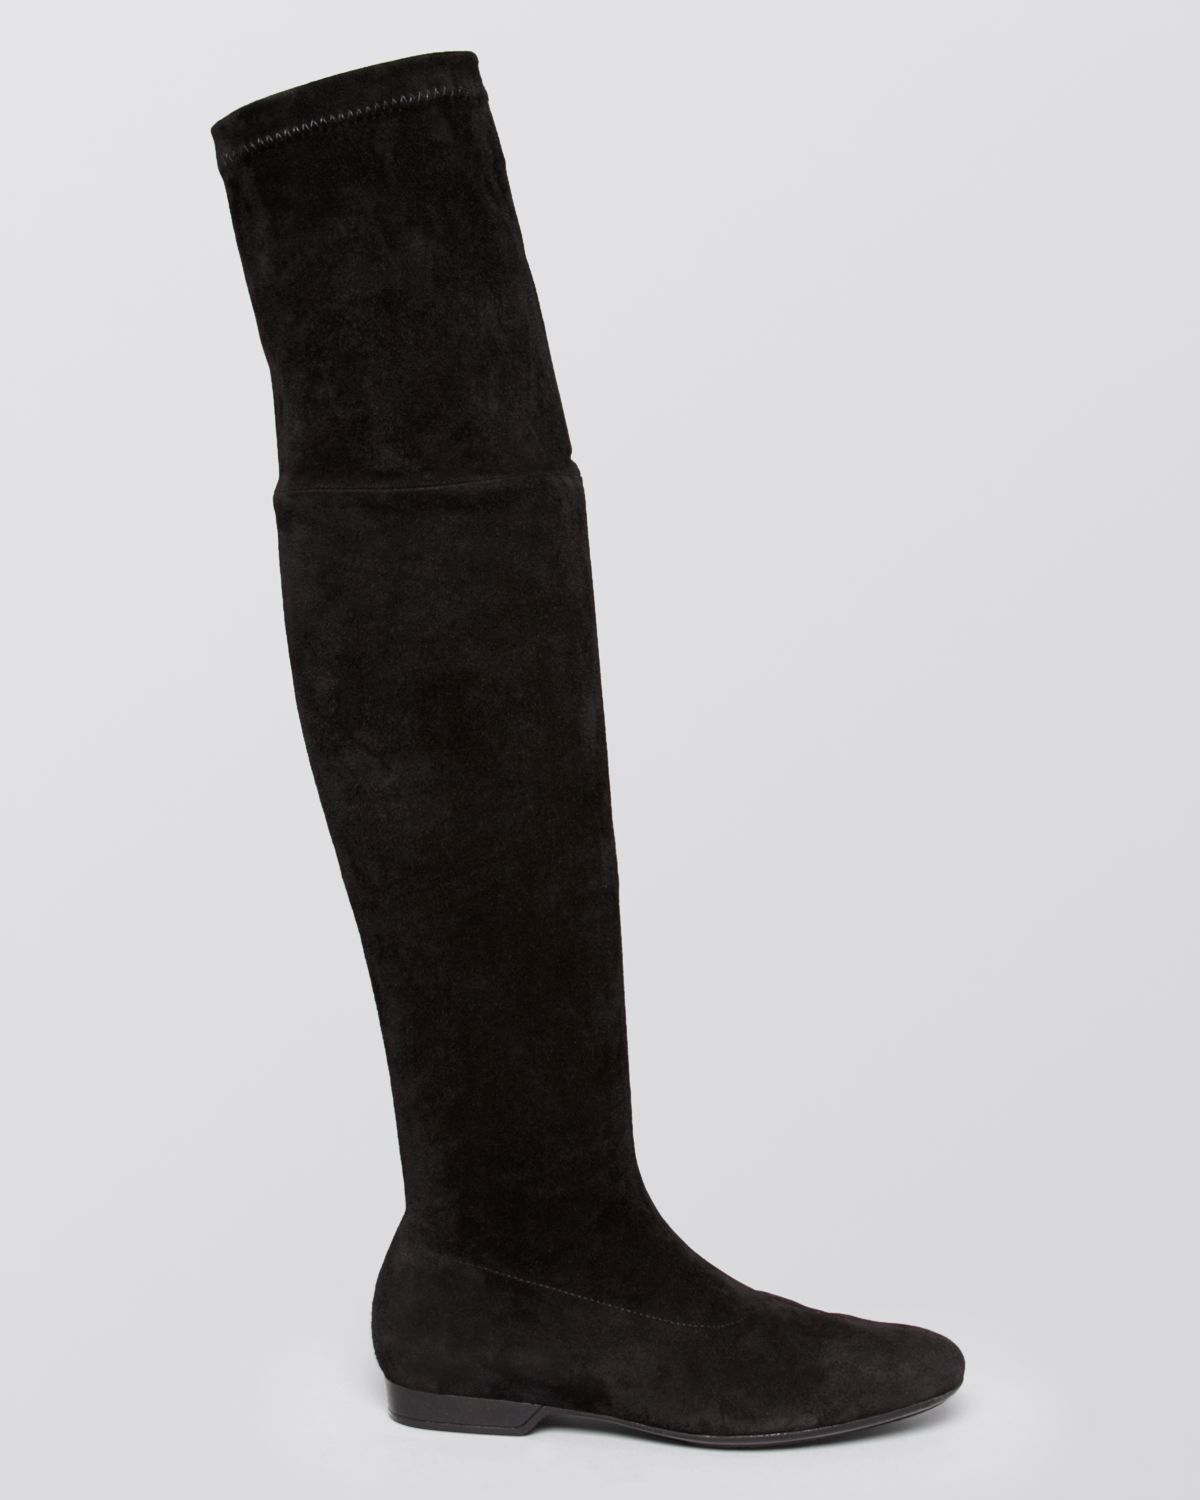 Robert Clergerie Flat Over The Knee Boots Fissah Stretch